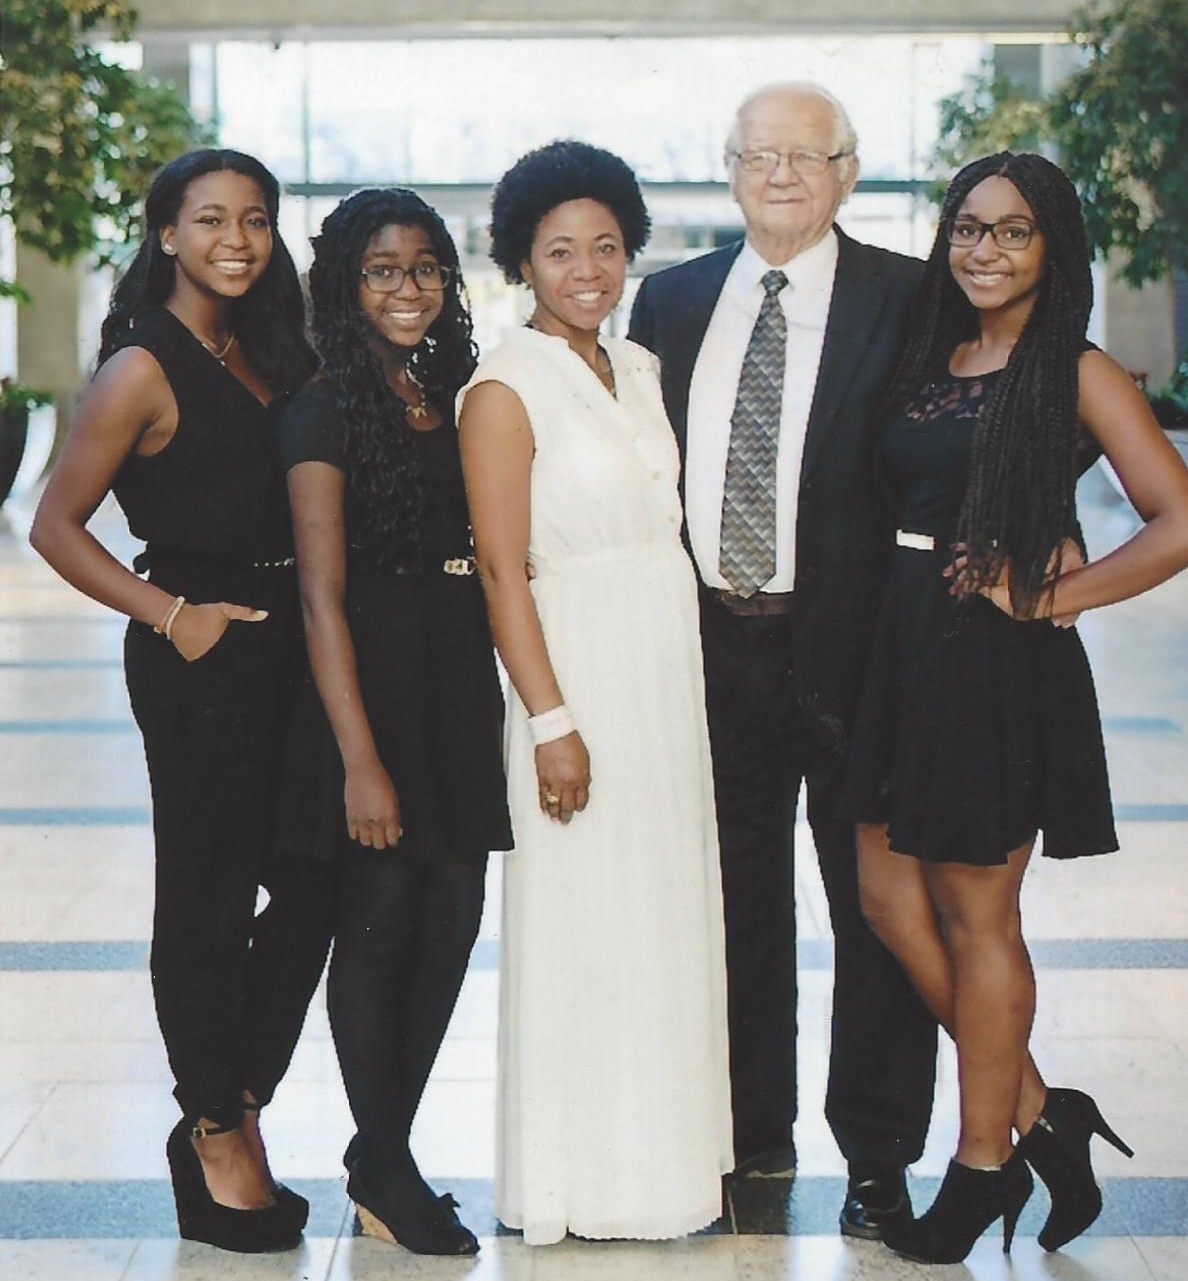 Burnell with his new wife and step-daughters.